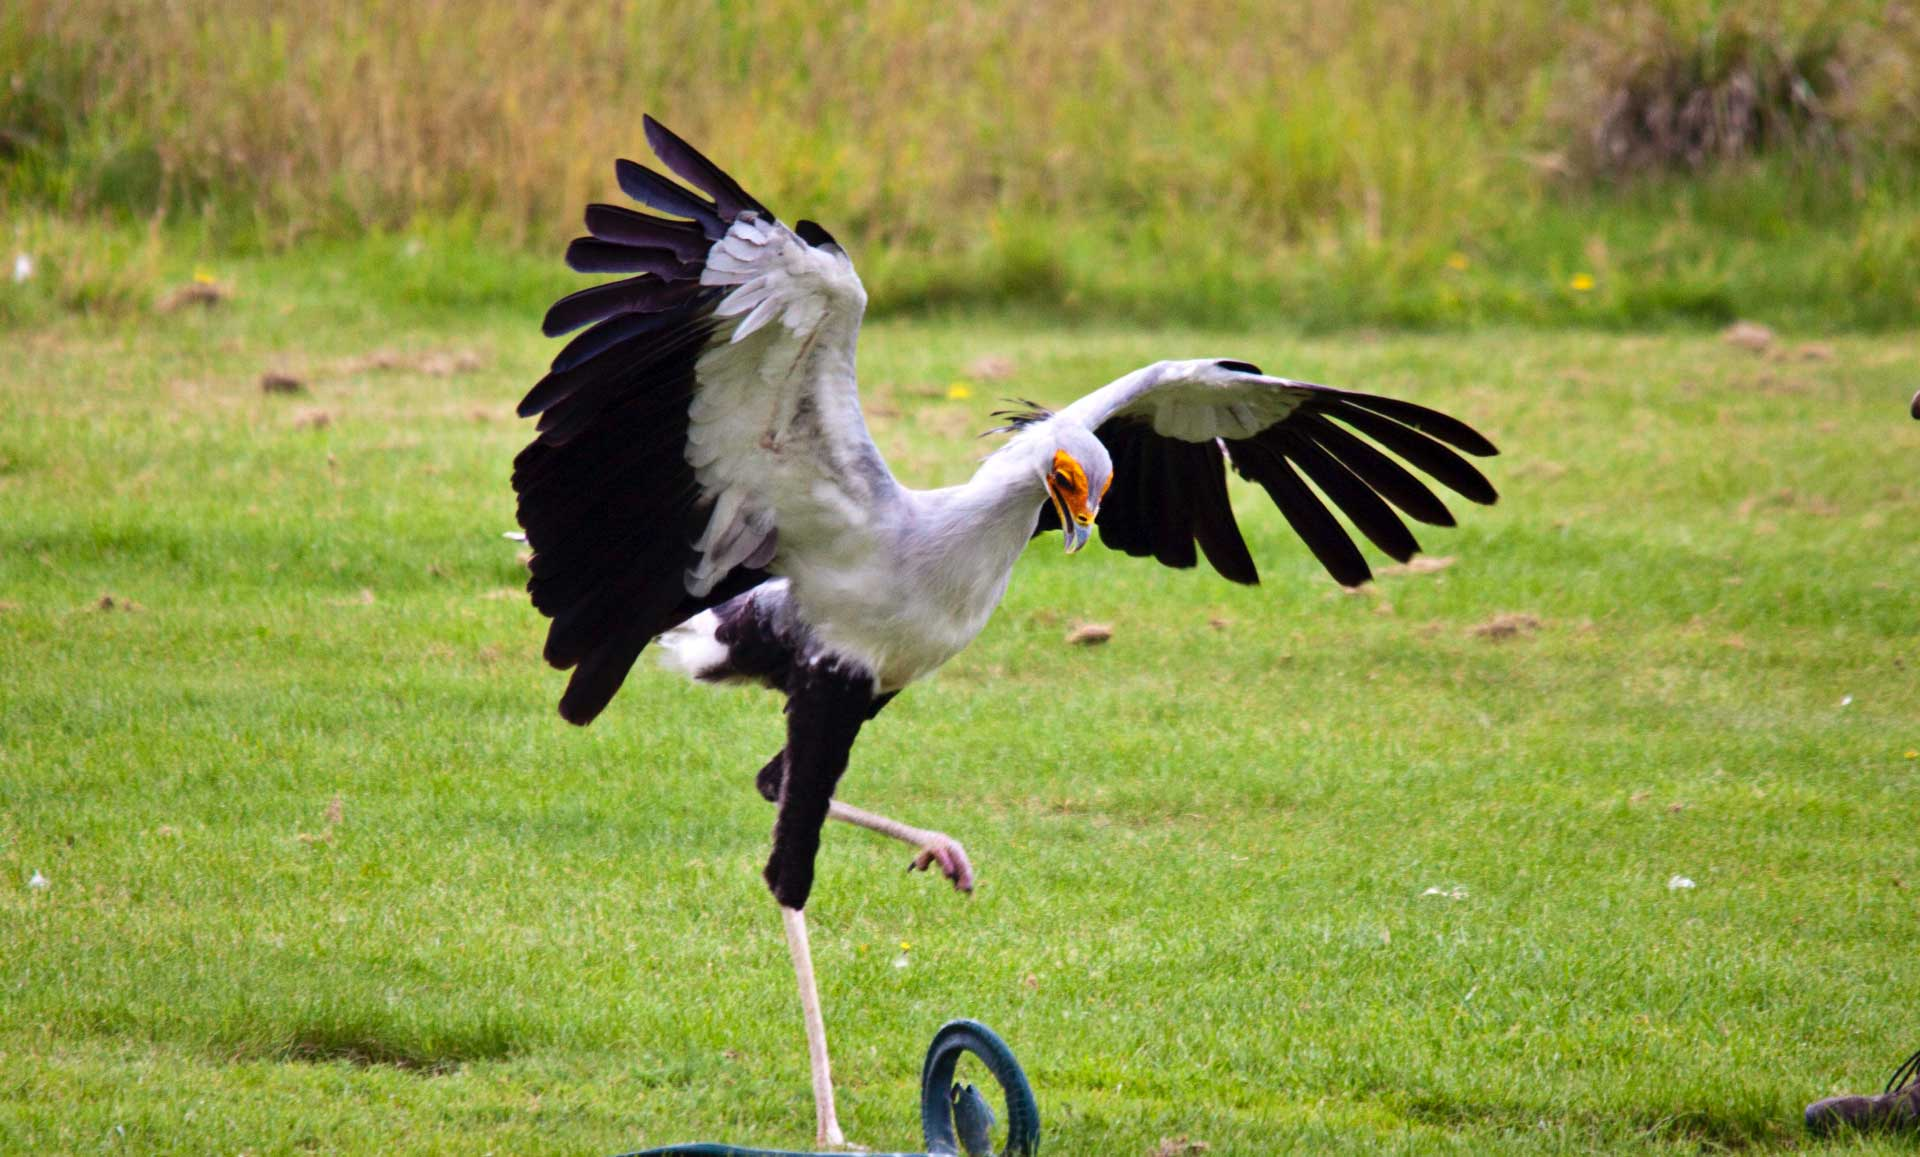 study secretary birds stamp on their prey with force 5 times